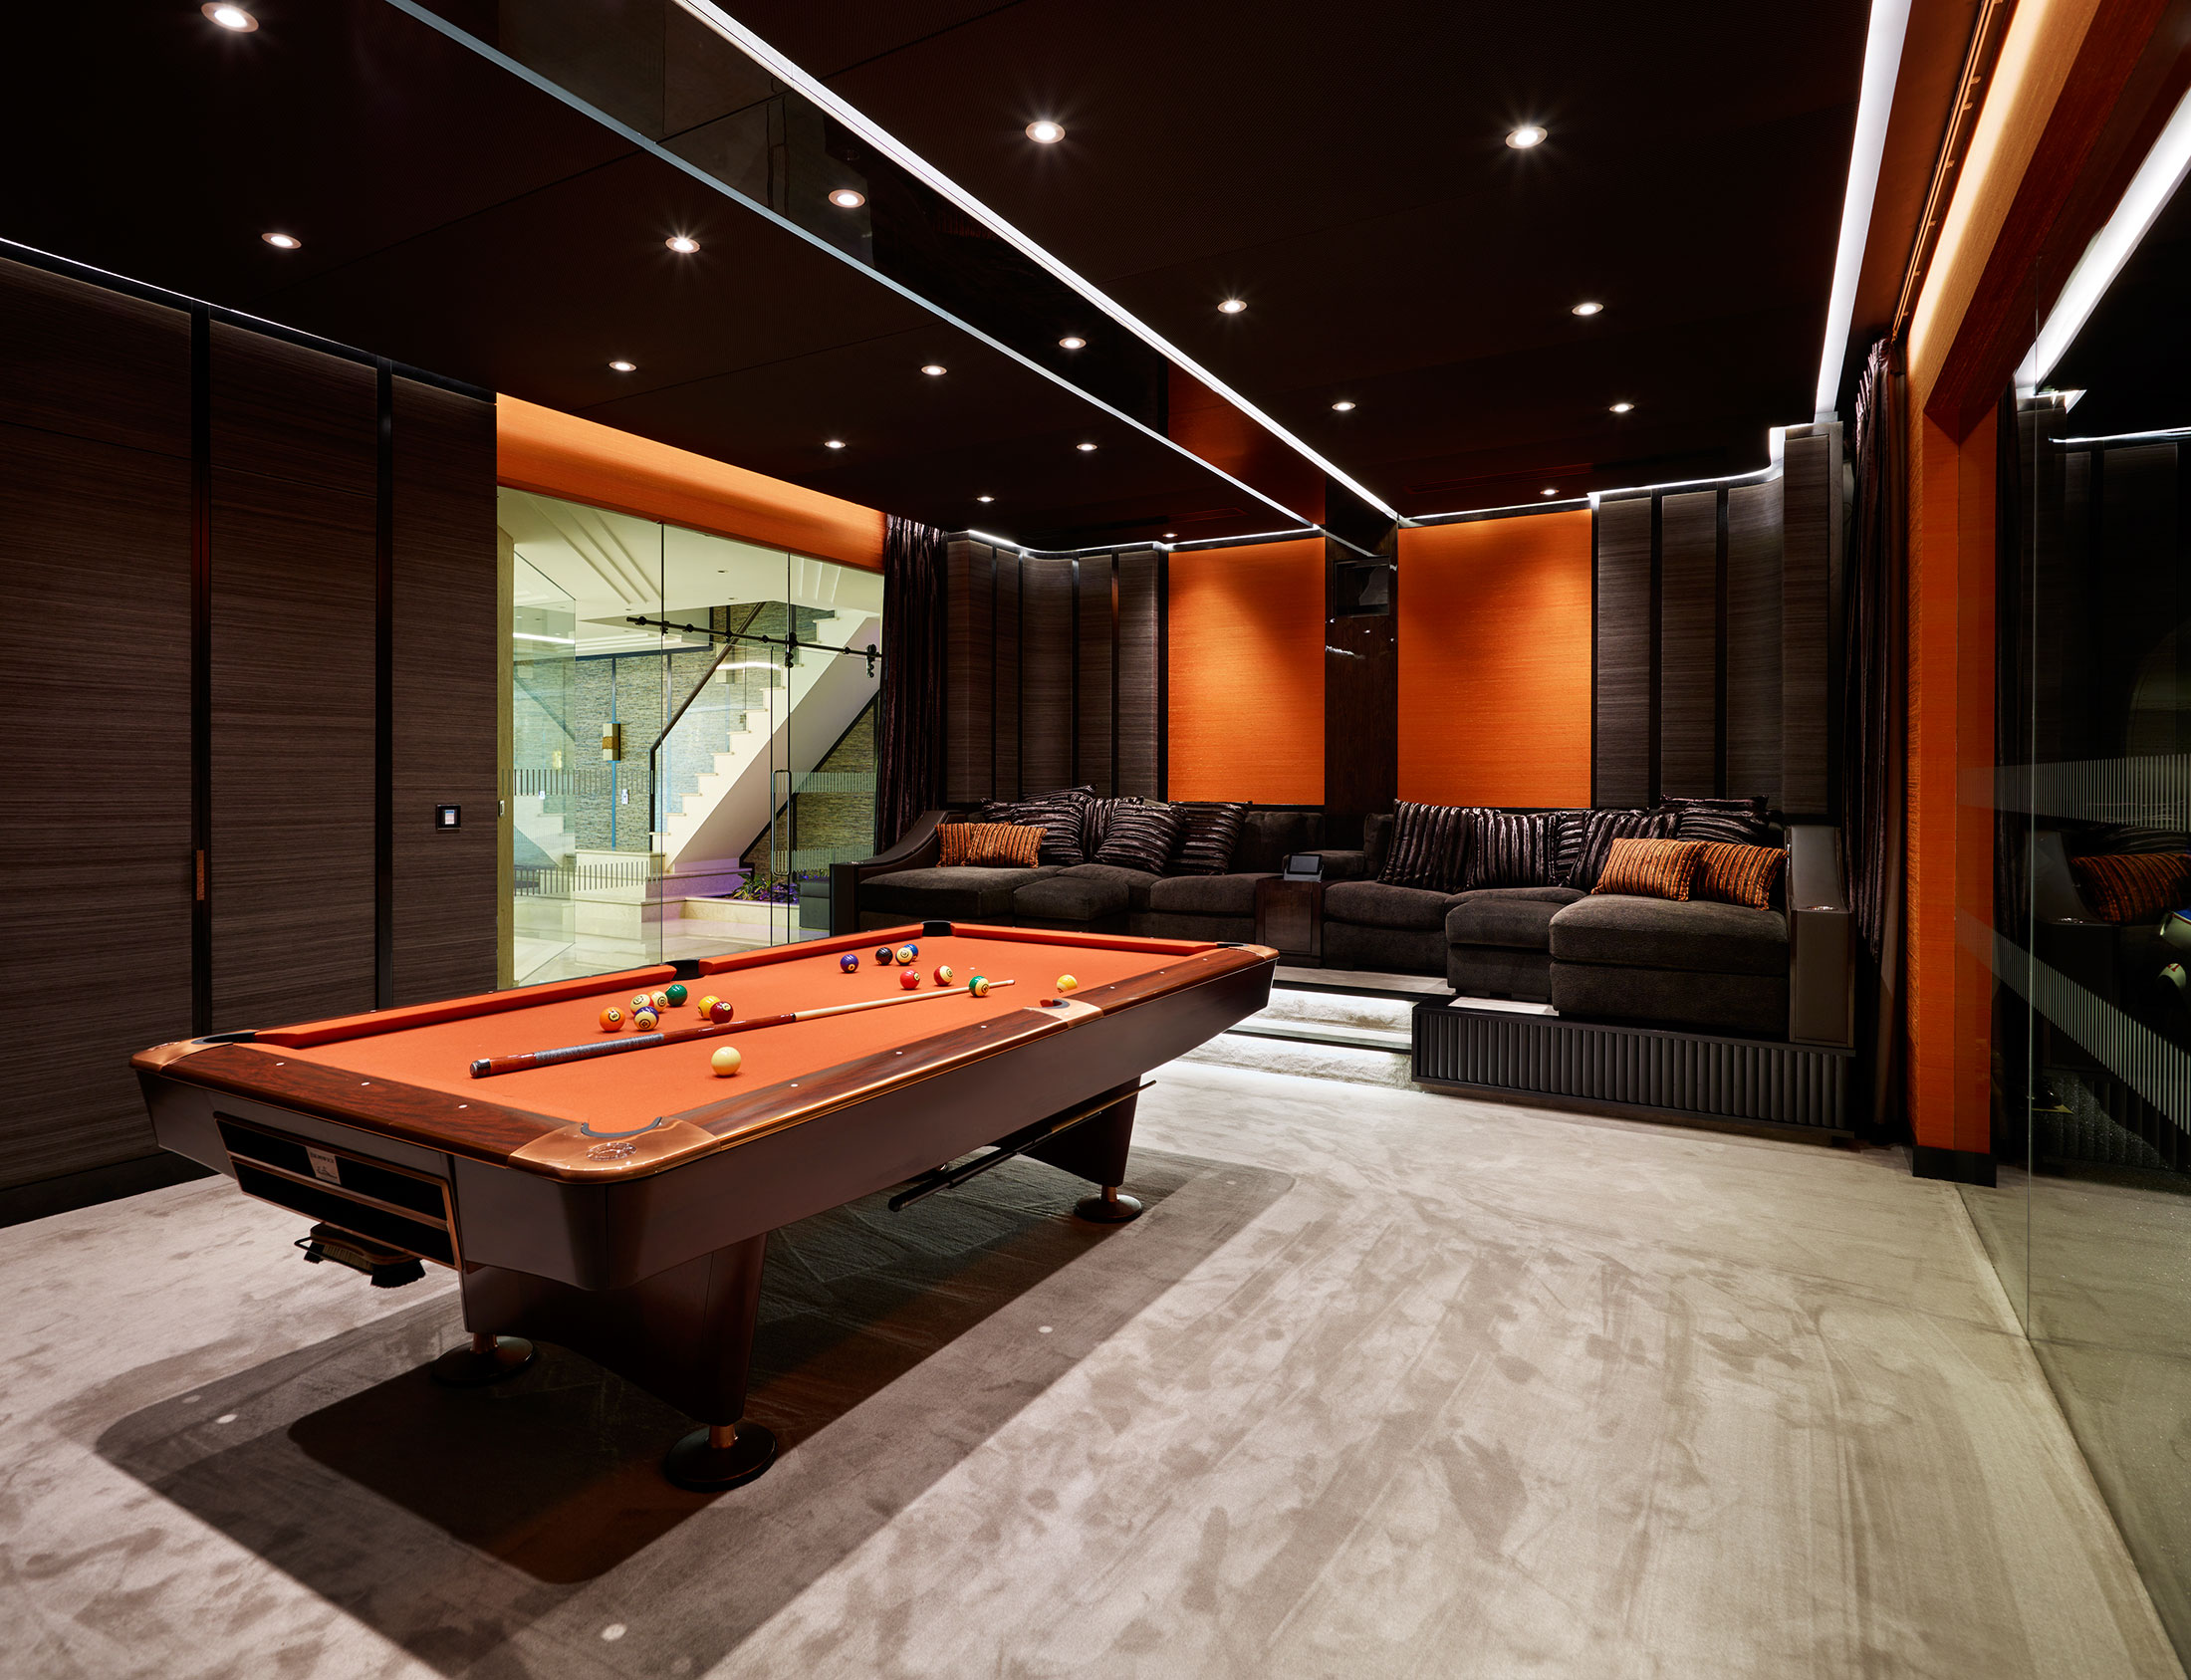 luxury interior design london residence cinema and pool room